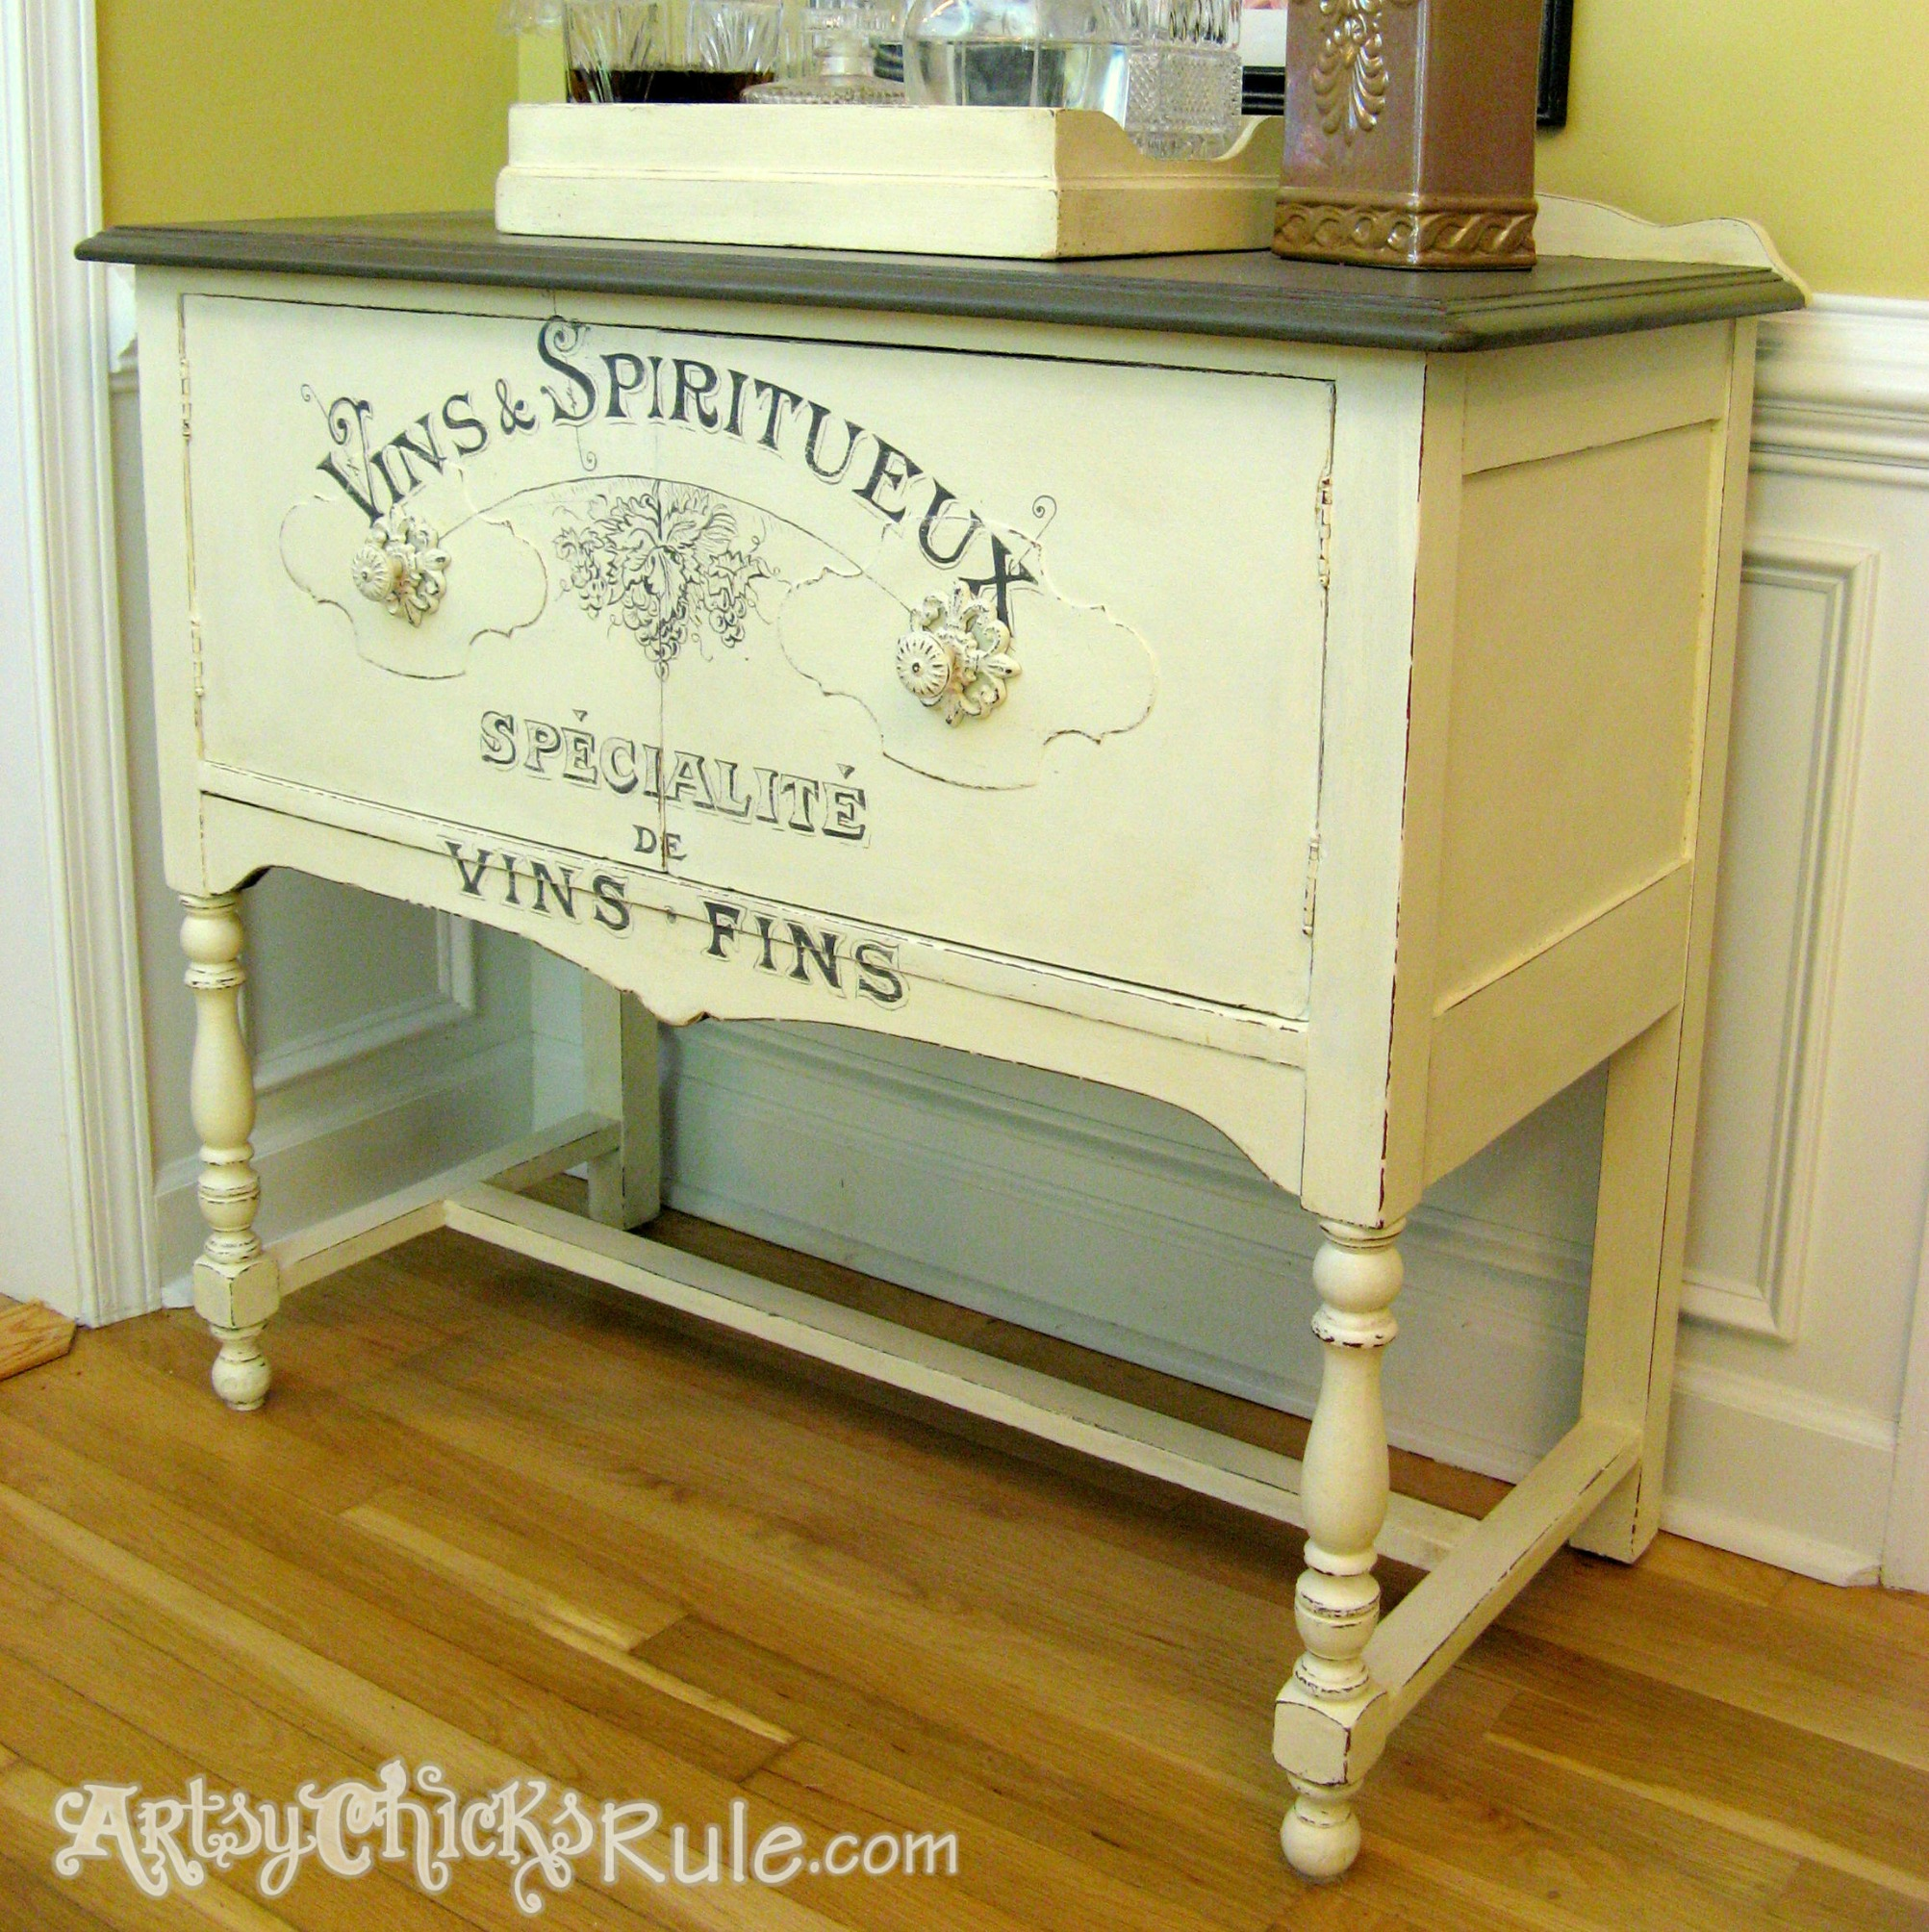 23 DIY image transfer projects on furniture and home decor - Girl in the Garage